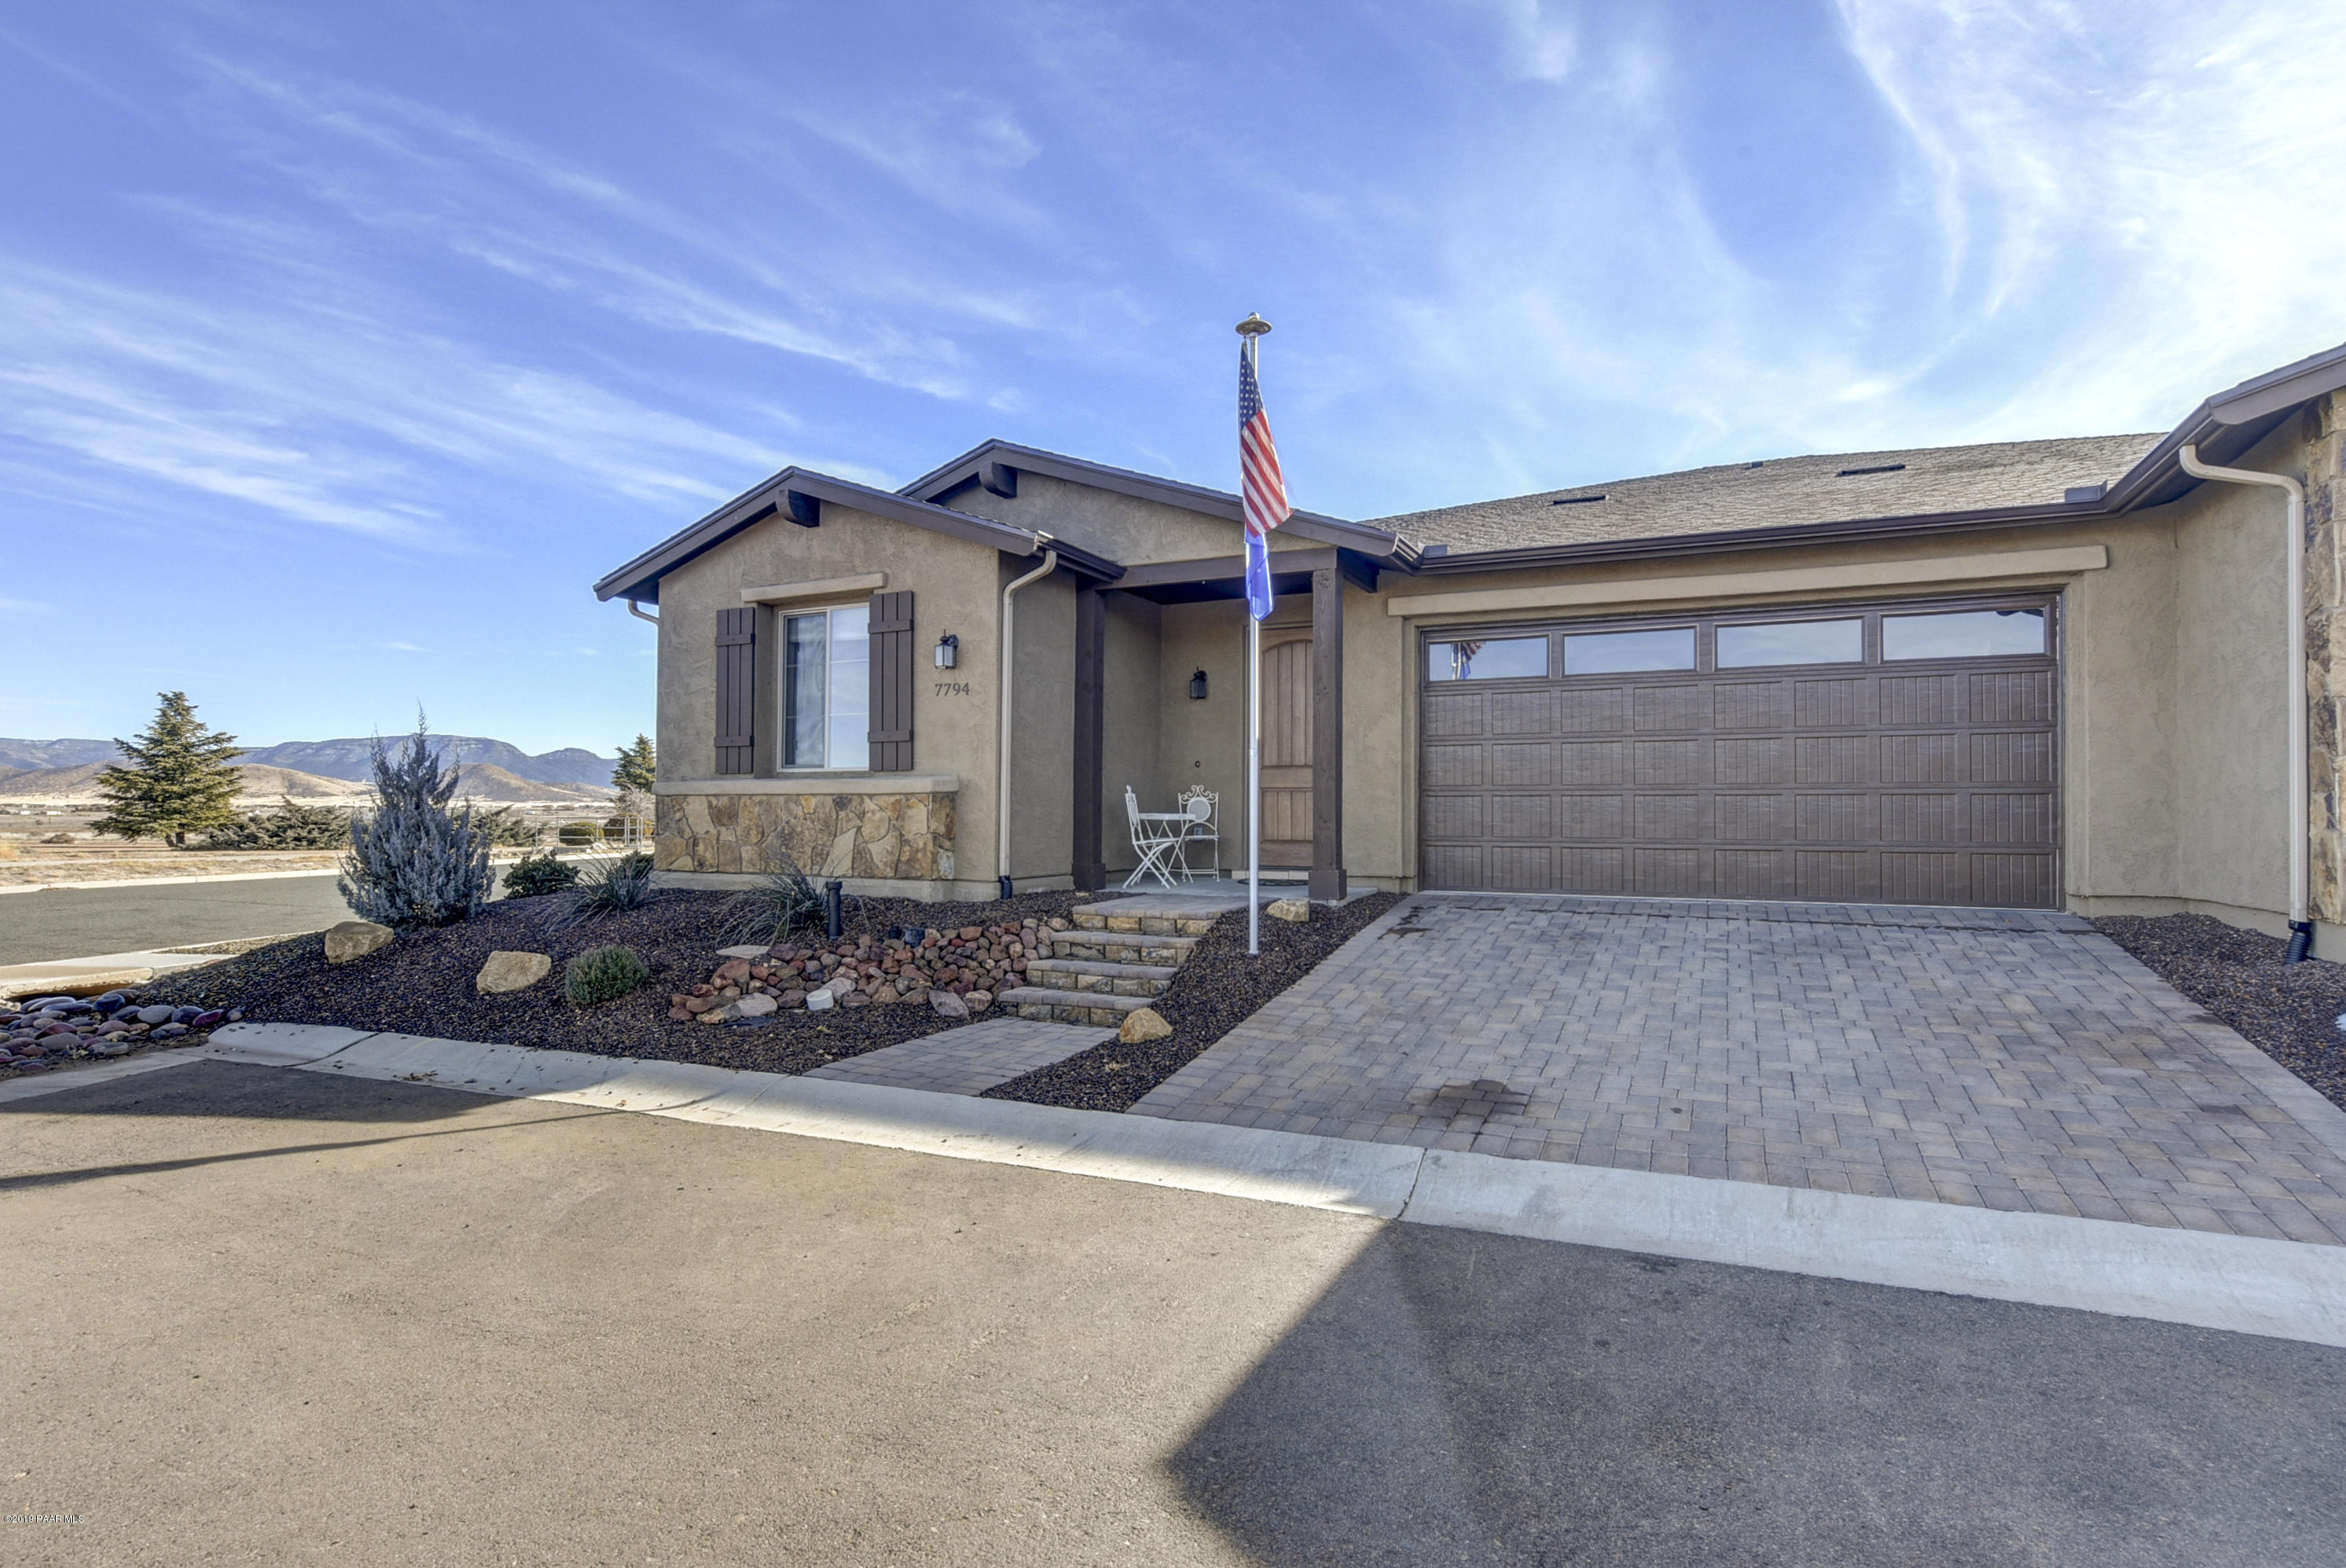 7794 E Lavender Loop, one of homes for sale in Prescott Valley